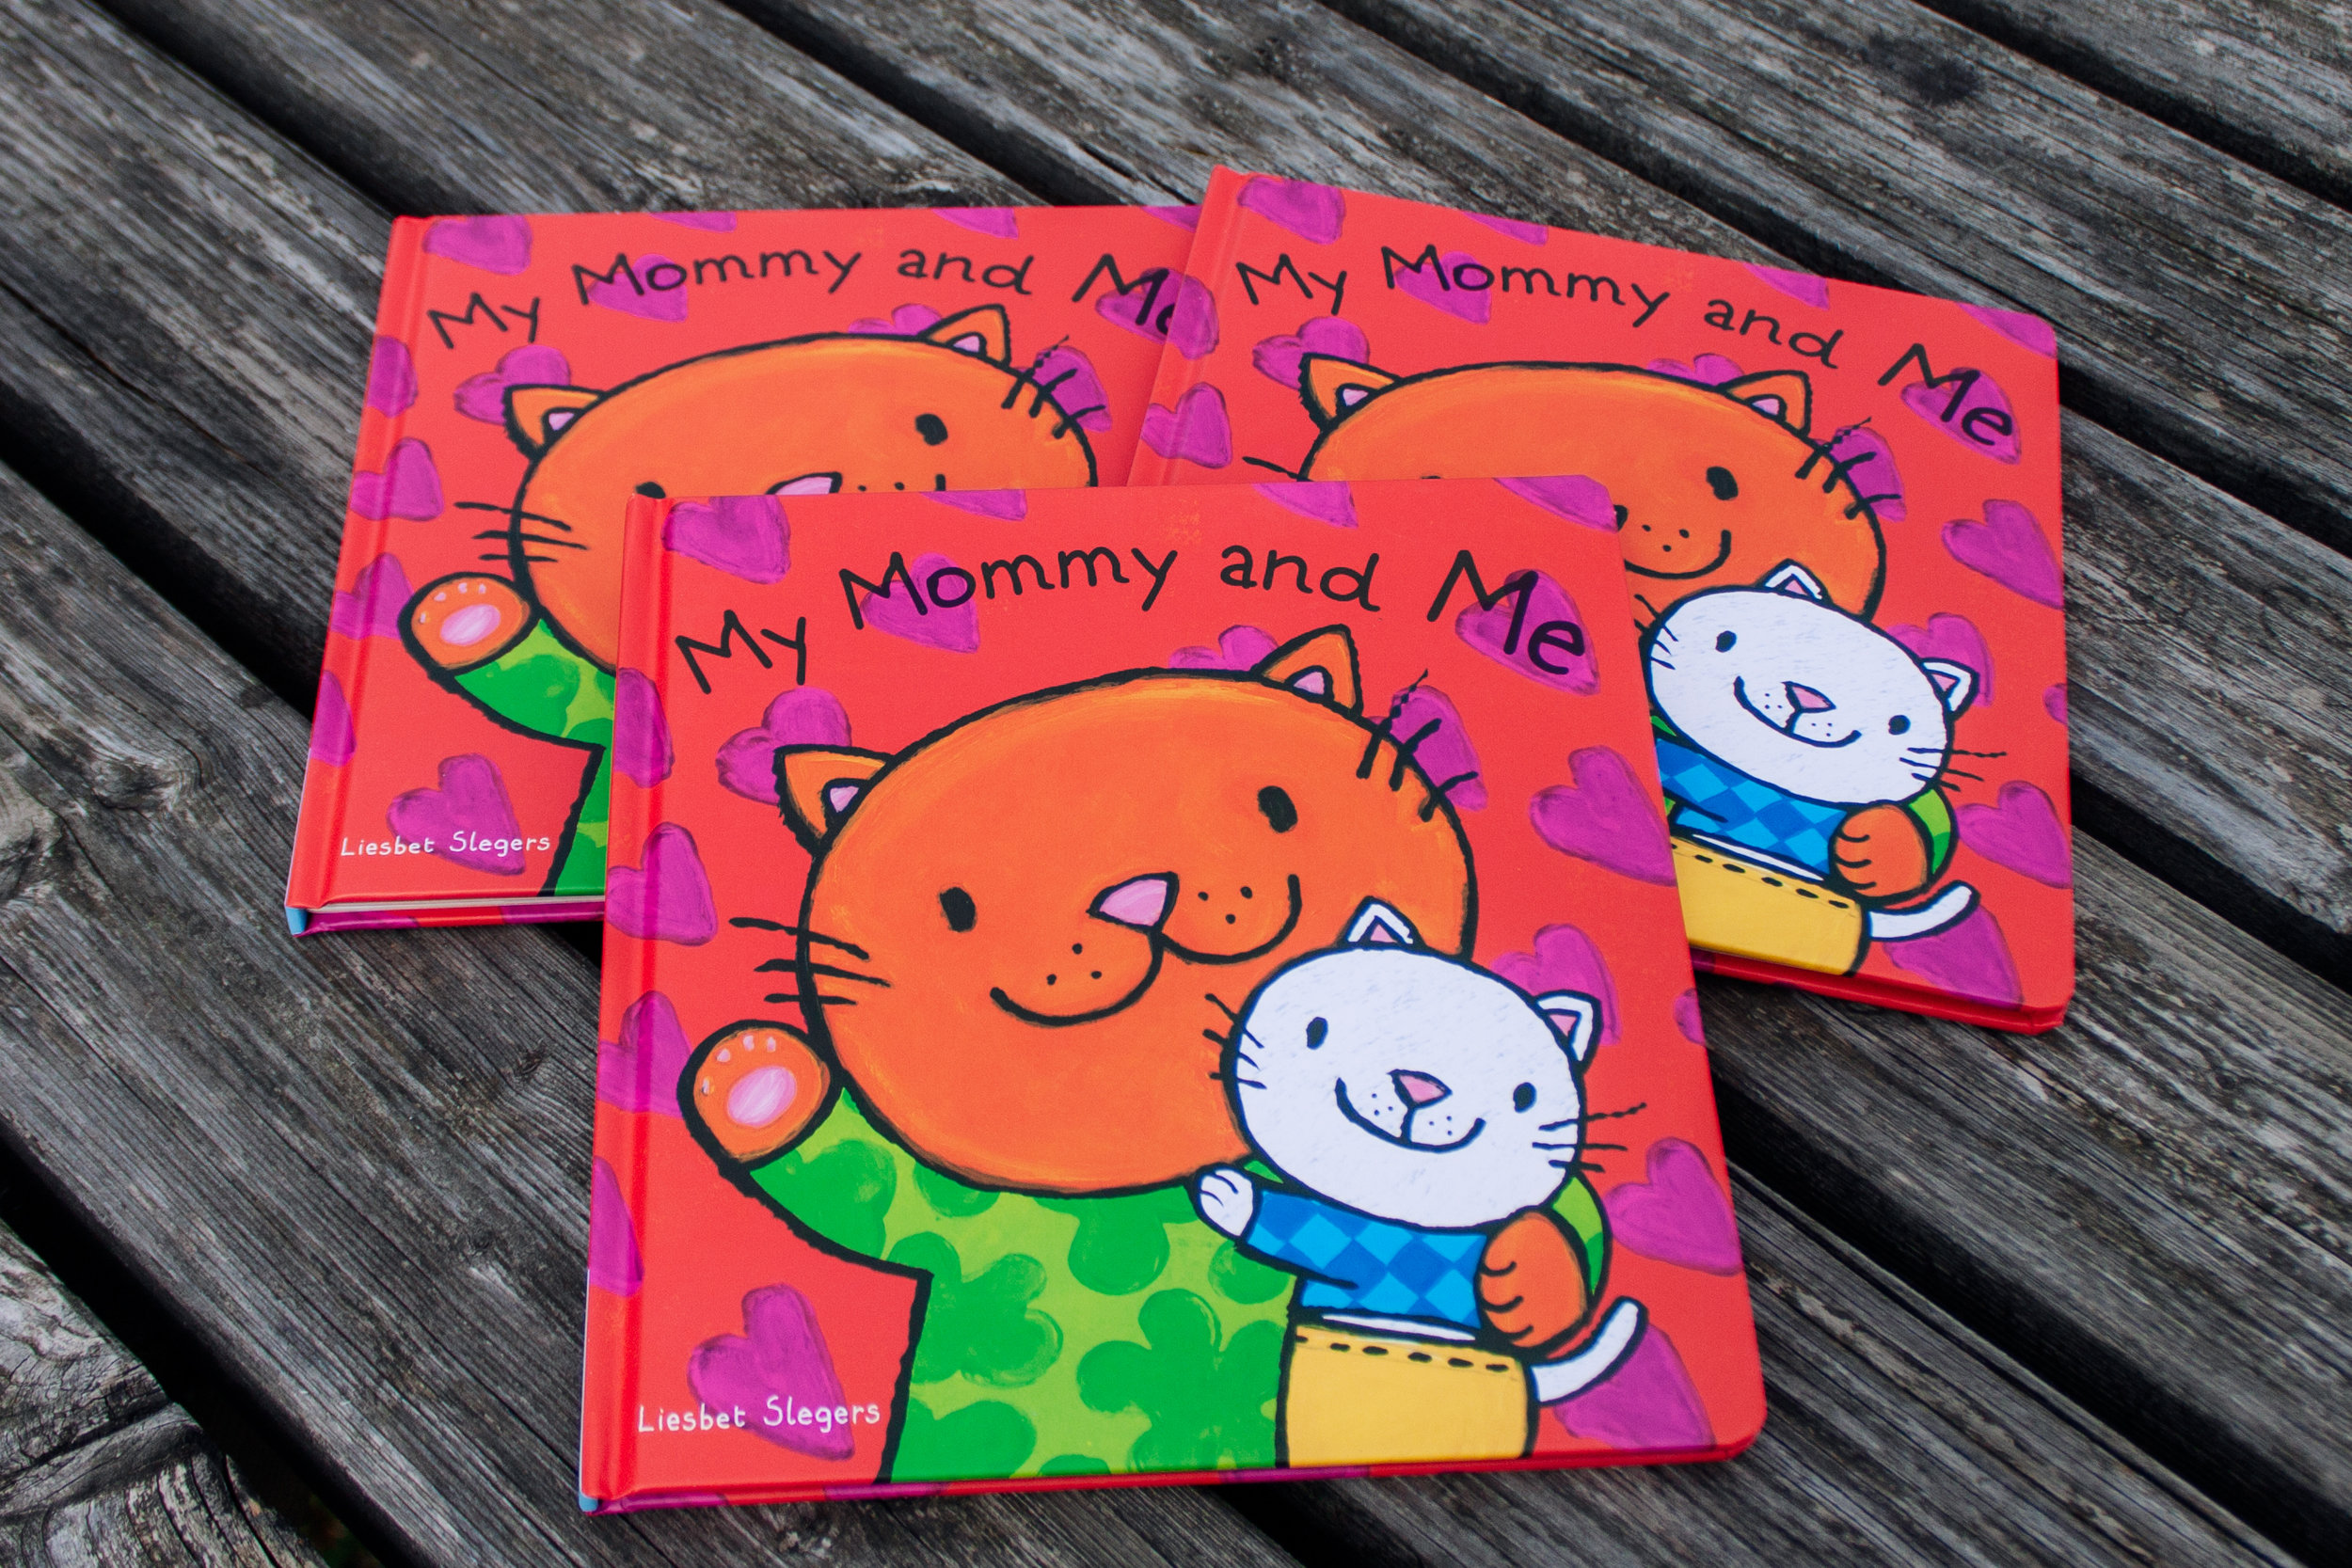 Clavis-publishing-new-york-mothers-day-books-for-toddlers-childrens-picture-book-gift-celebration- 9781605374529-my-mommy-and-me-liesbet-slegers-best-selling-author-illustrator.jpg